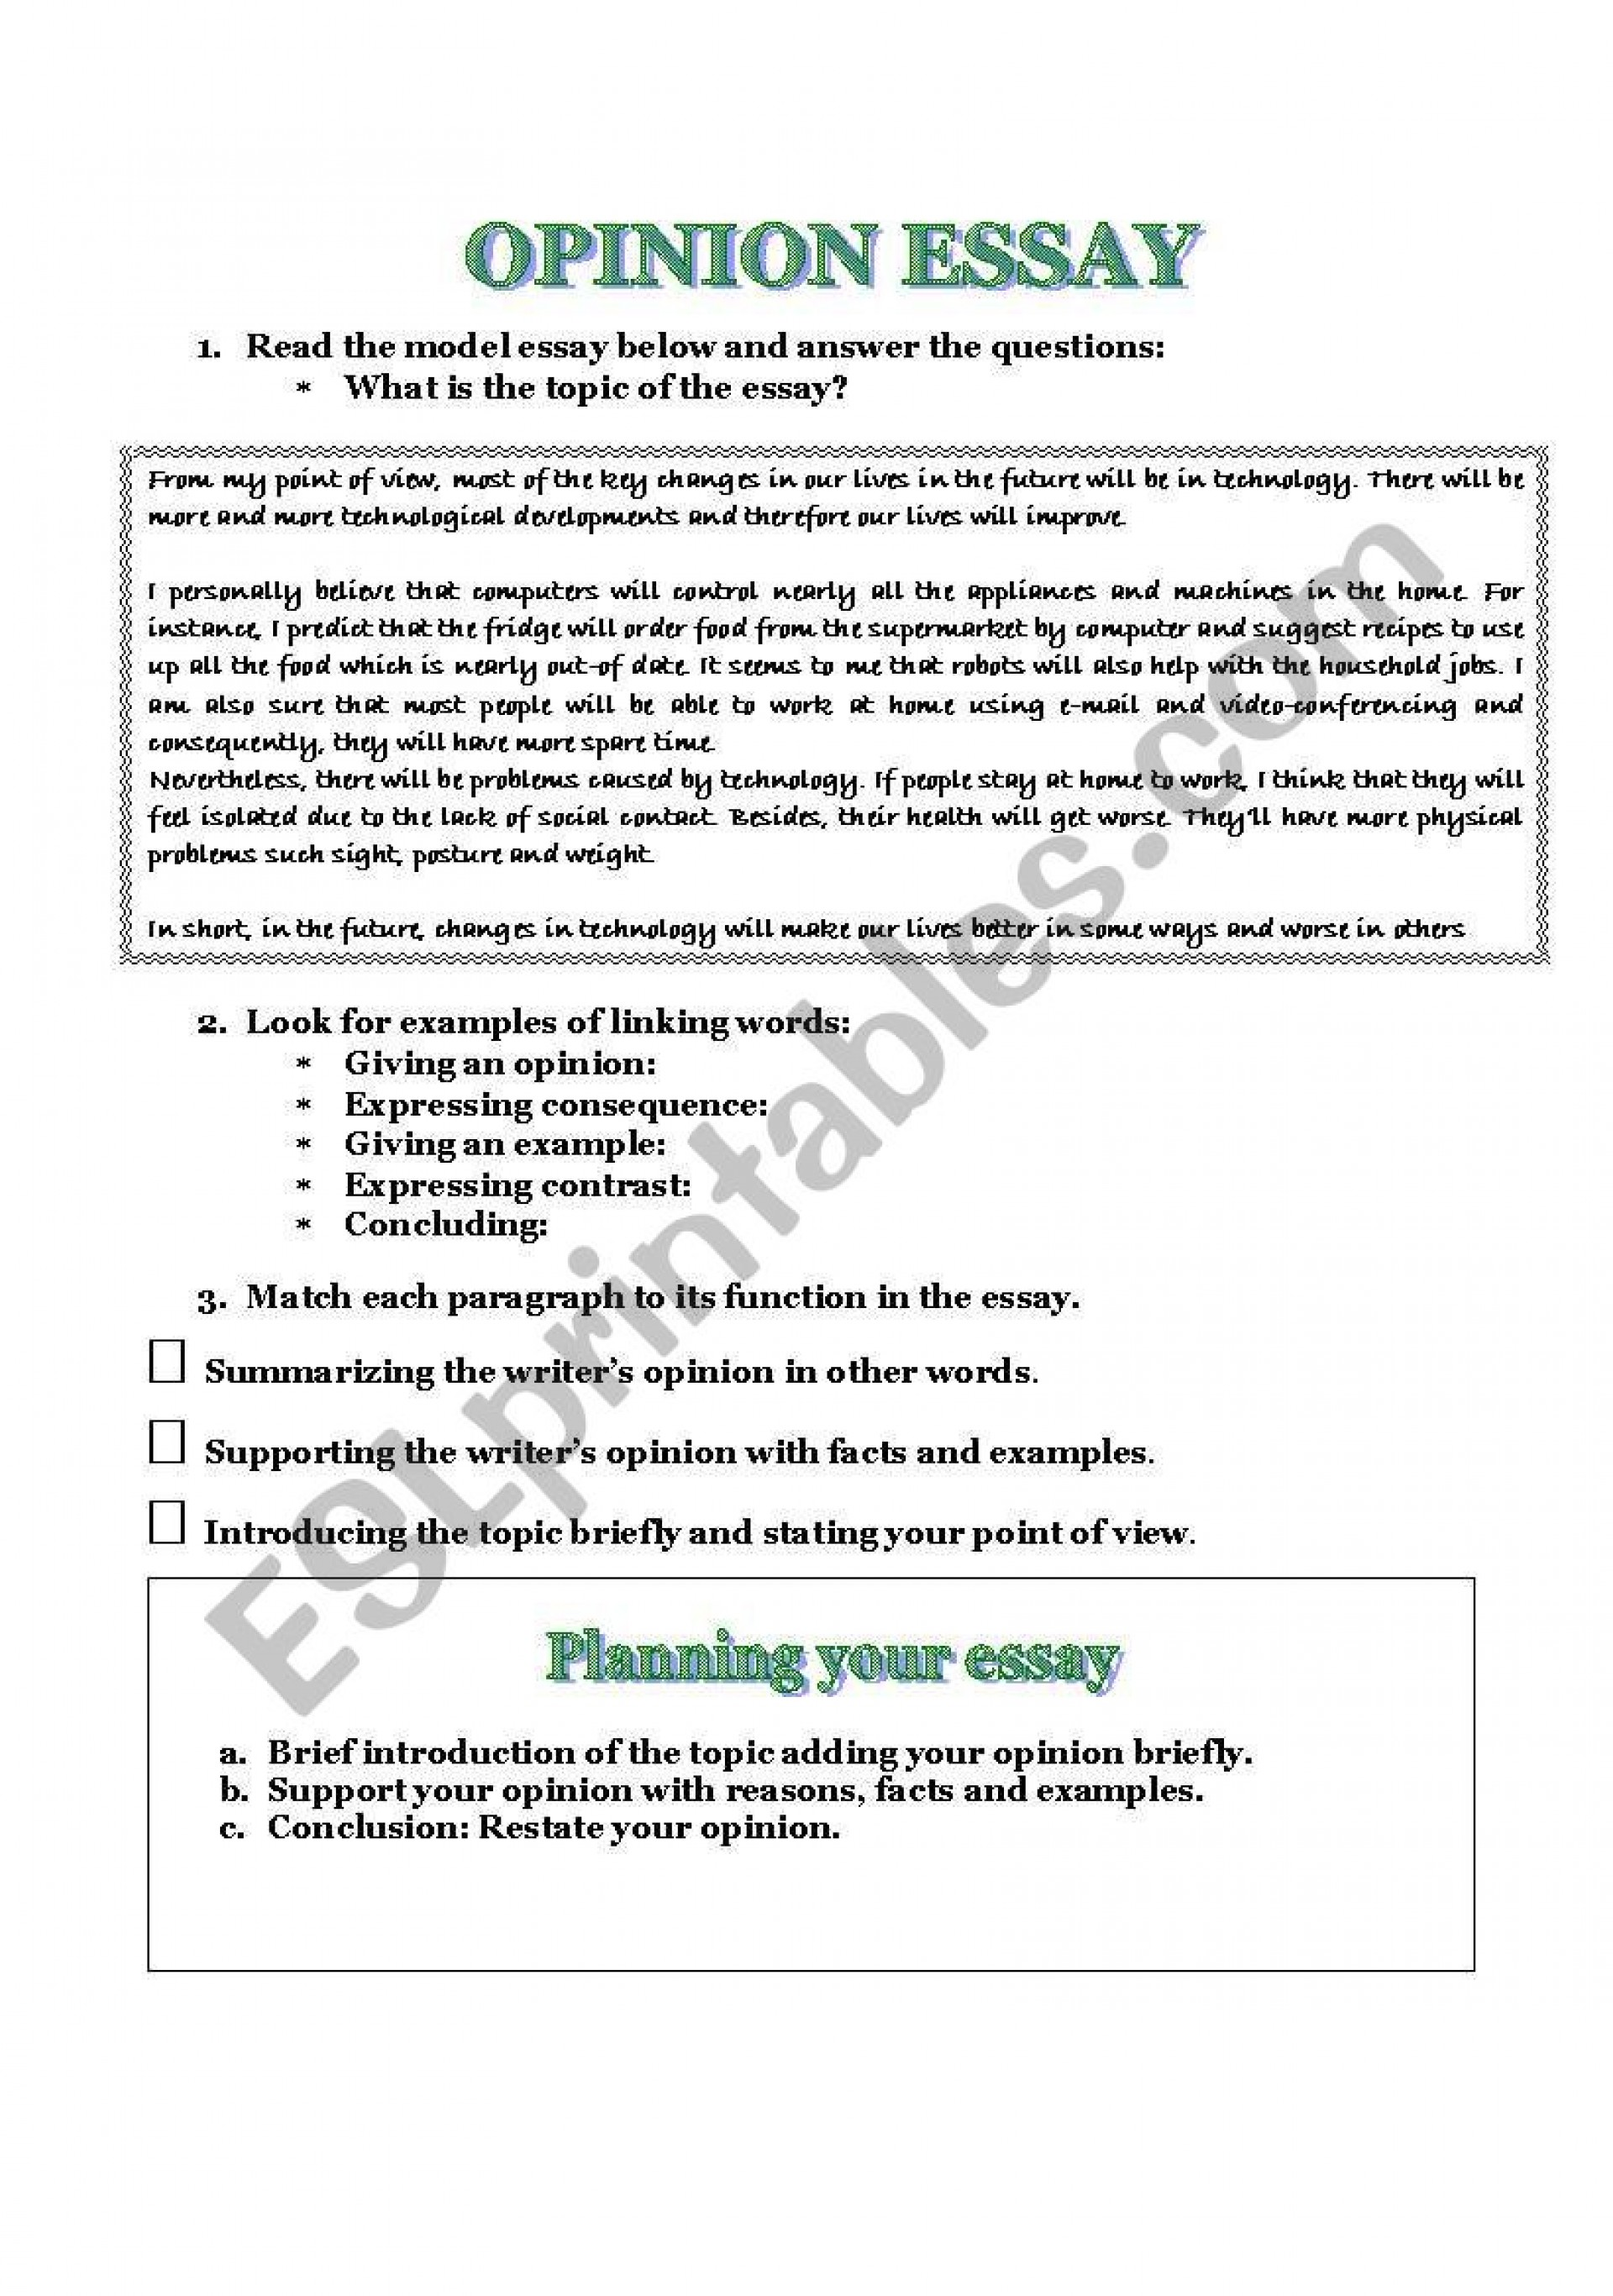 024 Opinion Essay Examples Example 210824 1 How To Write A Good Staggering Format Pdf Free Ielts 1920